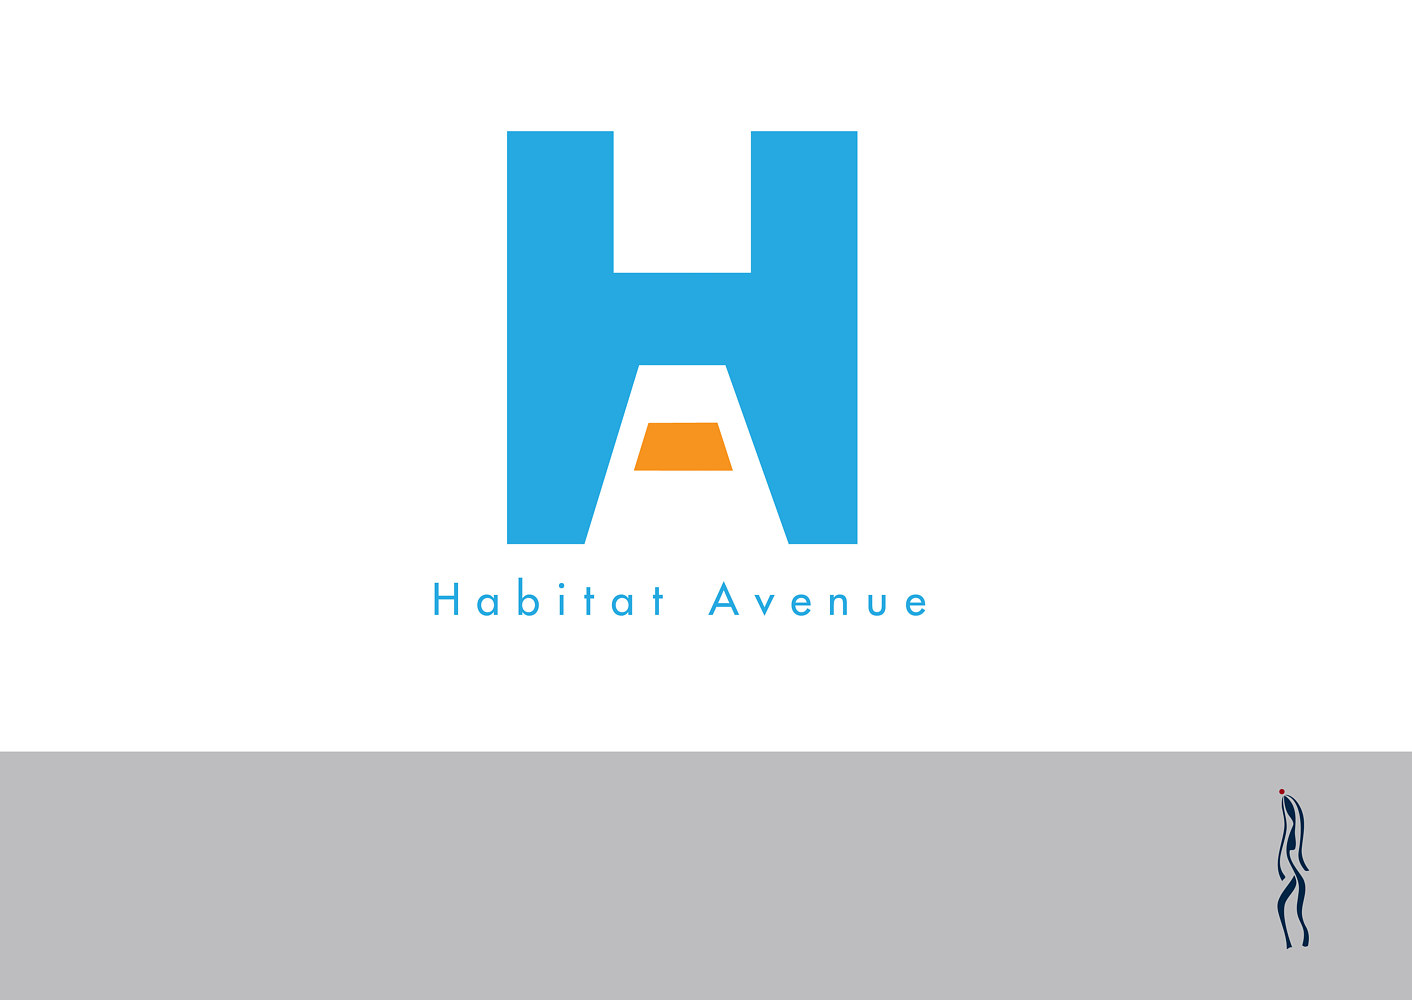 Habitat Avenue | Home Appliances by Nathalie Gribinski